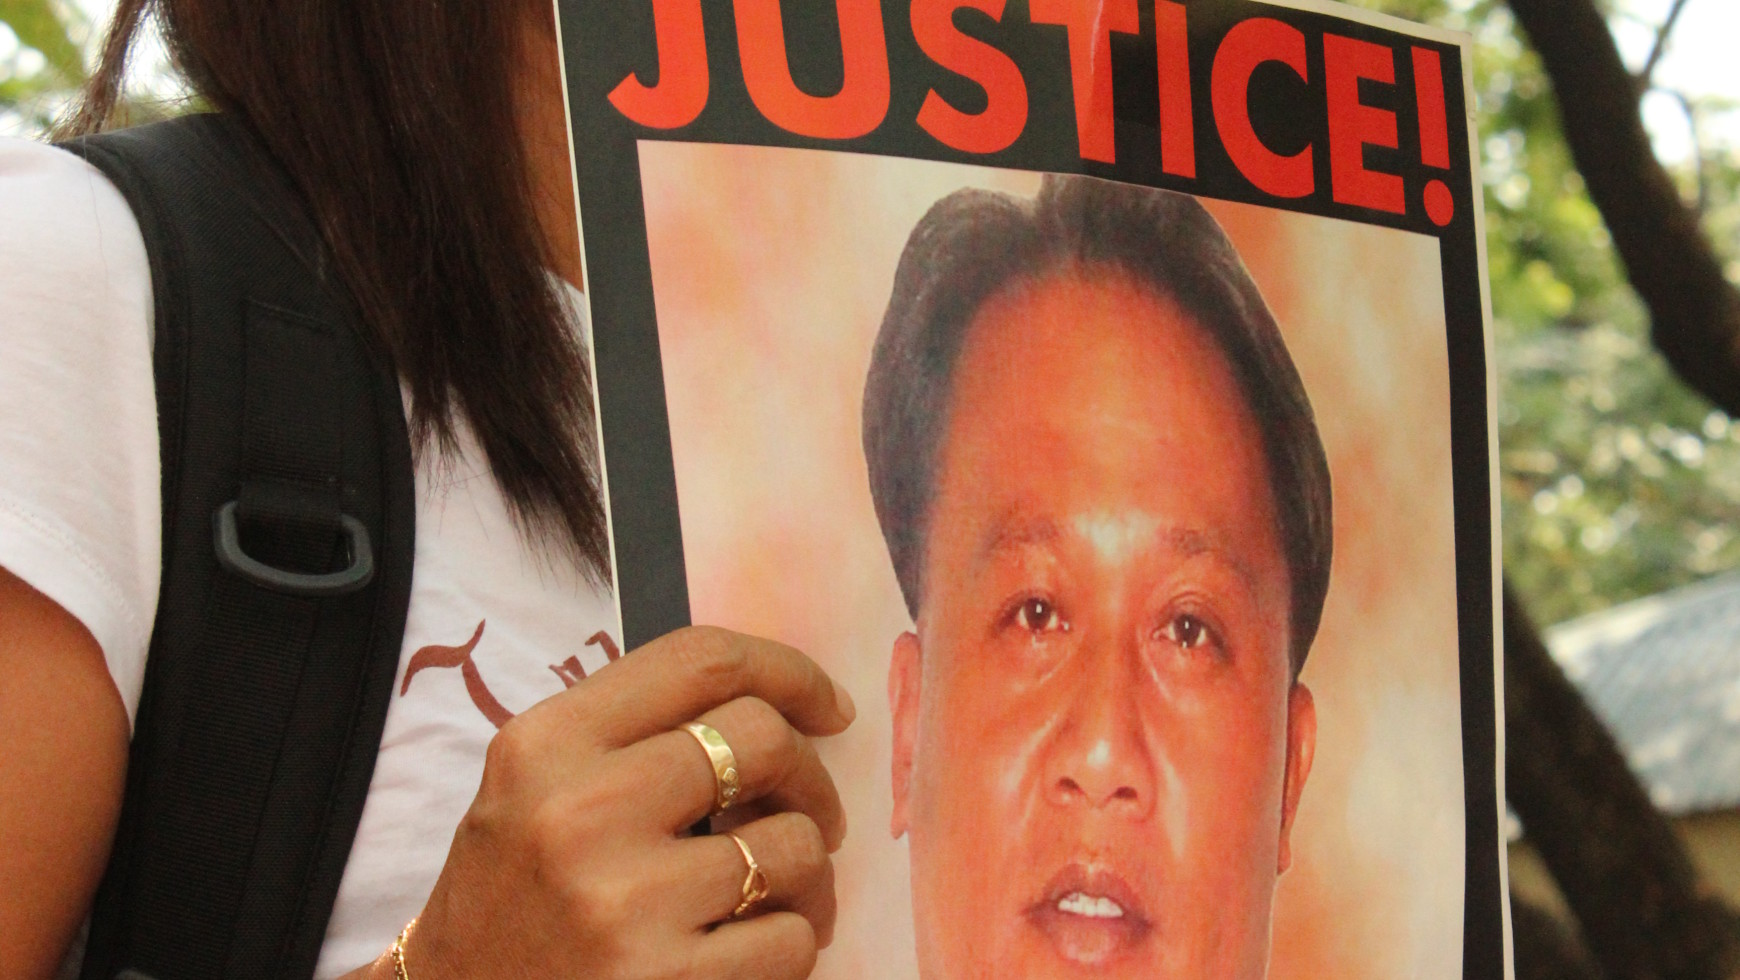 CA Dismisses Arroyo Plea to Stop Php 5.4M Suit over Extra-Judicial Killings